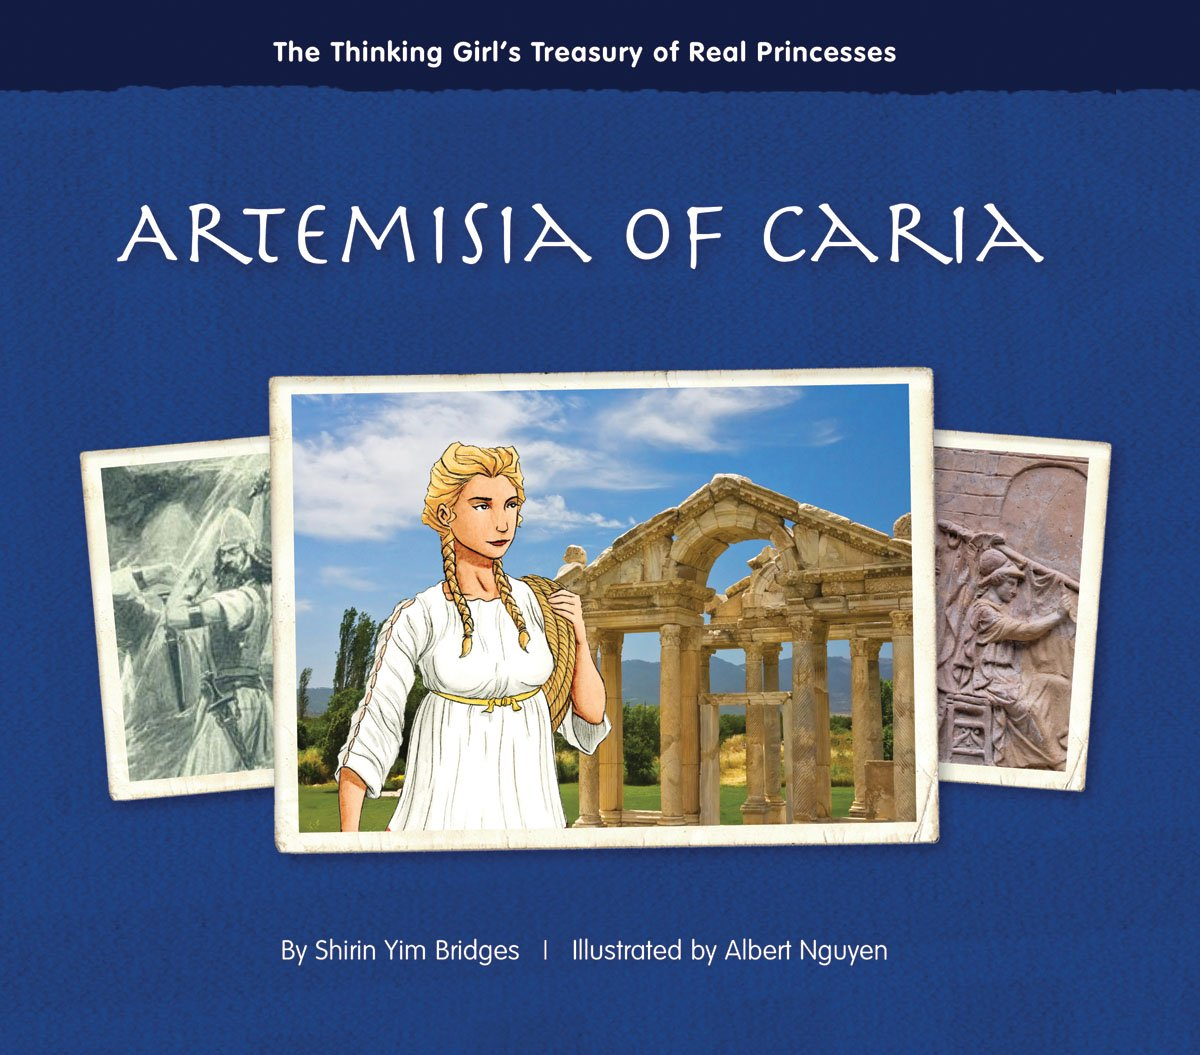 artemisia-of-caria-the-thinking-girl-s-treasury-of-real-princesses